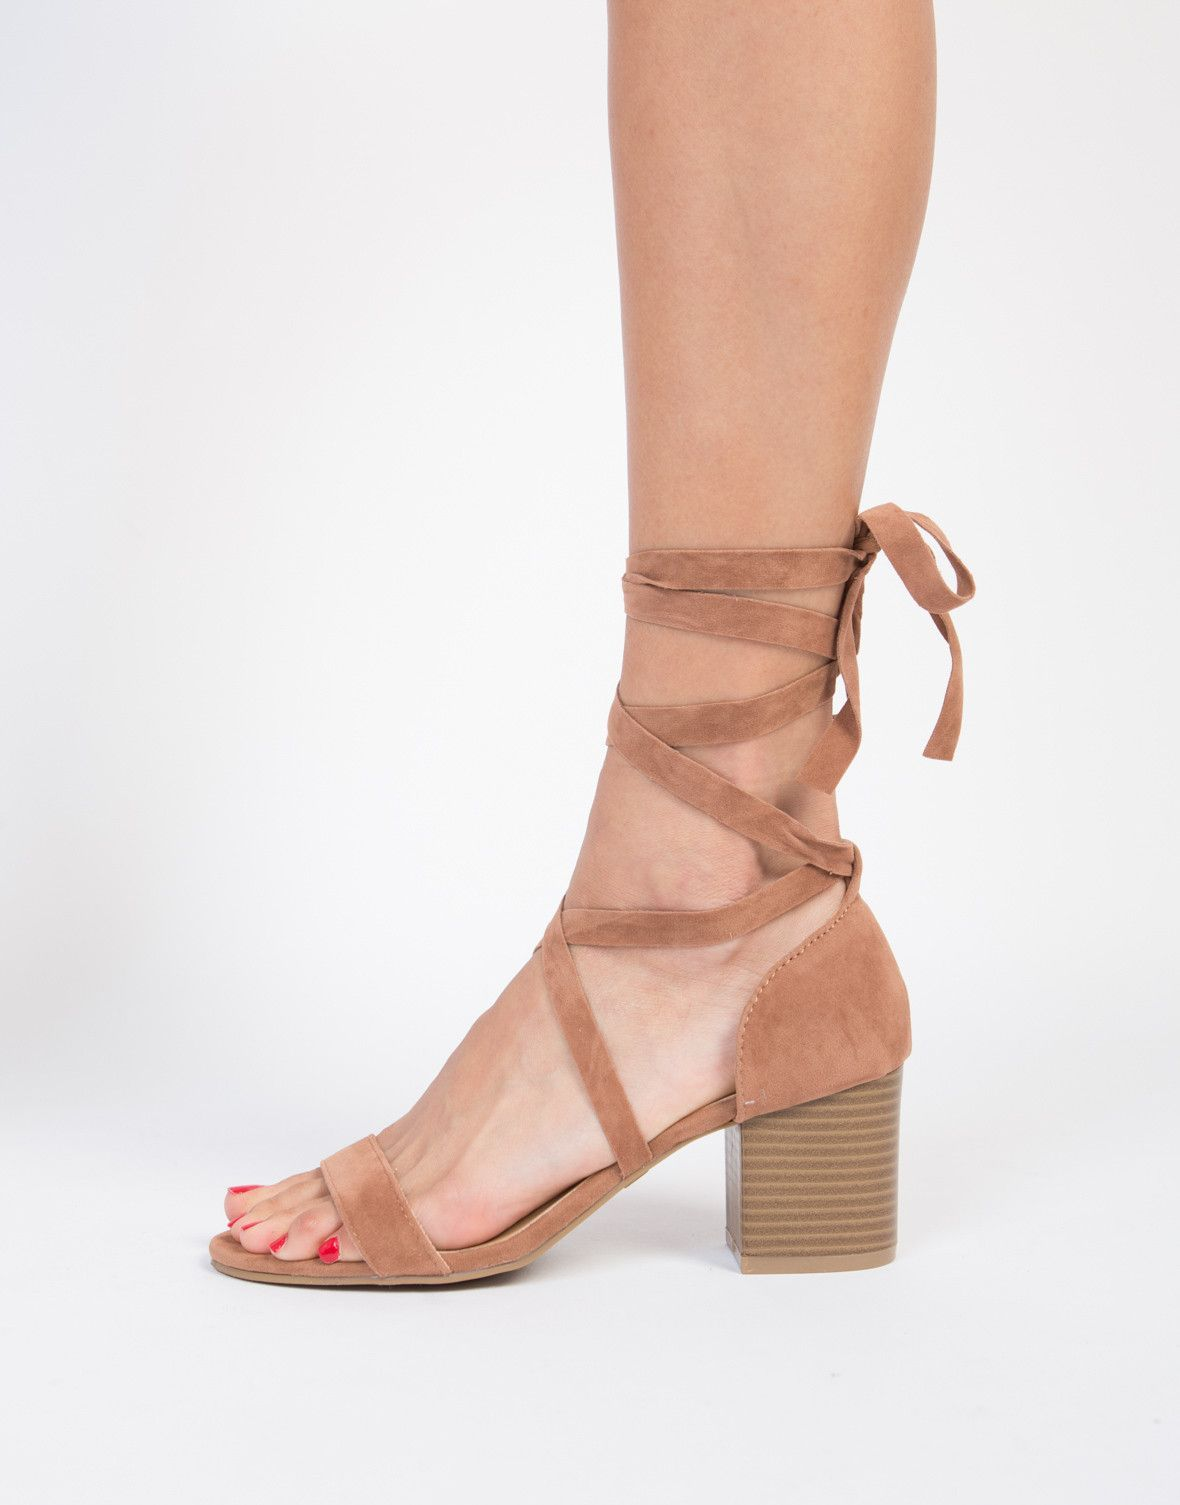 2383e537b382 Your new favorite pair of sandals are officially here. These camel Lace-Up  Block Heel Sandals are pretty much a must for your summer wardrobe needs.